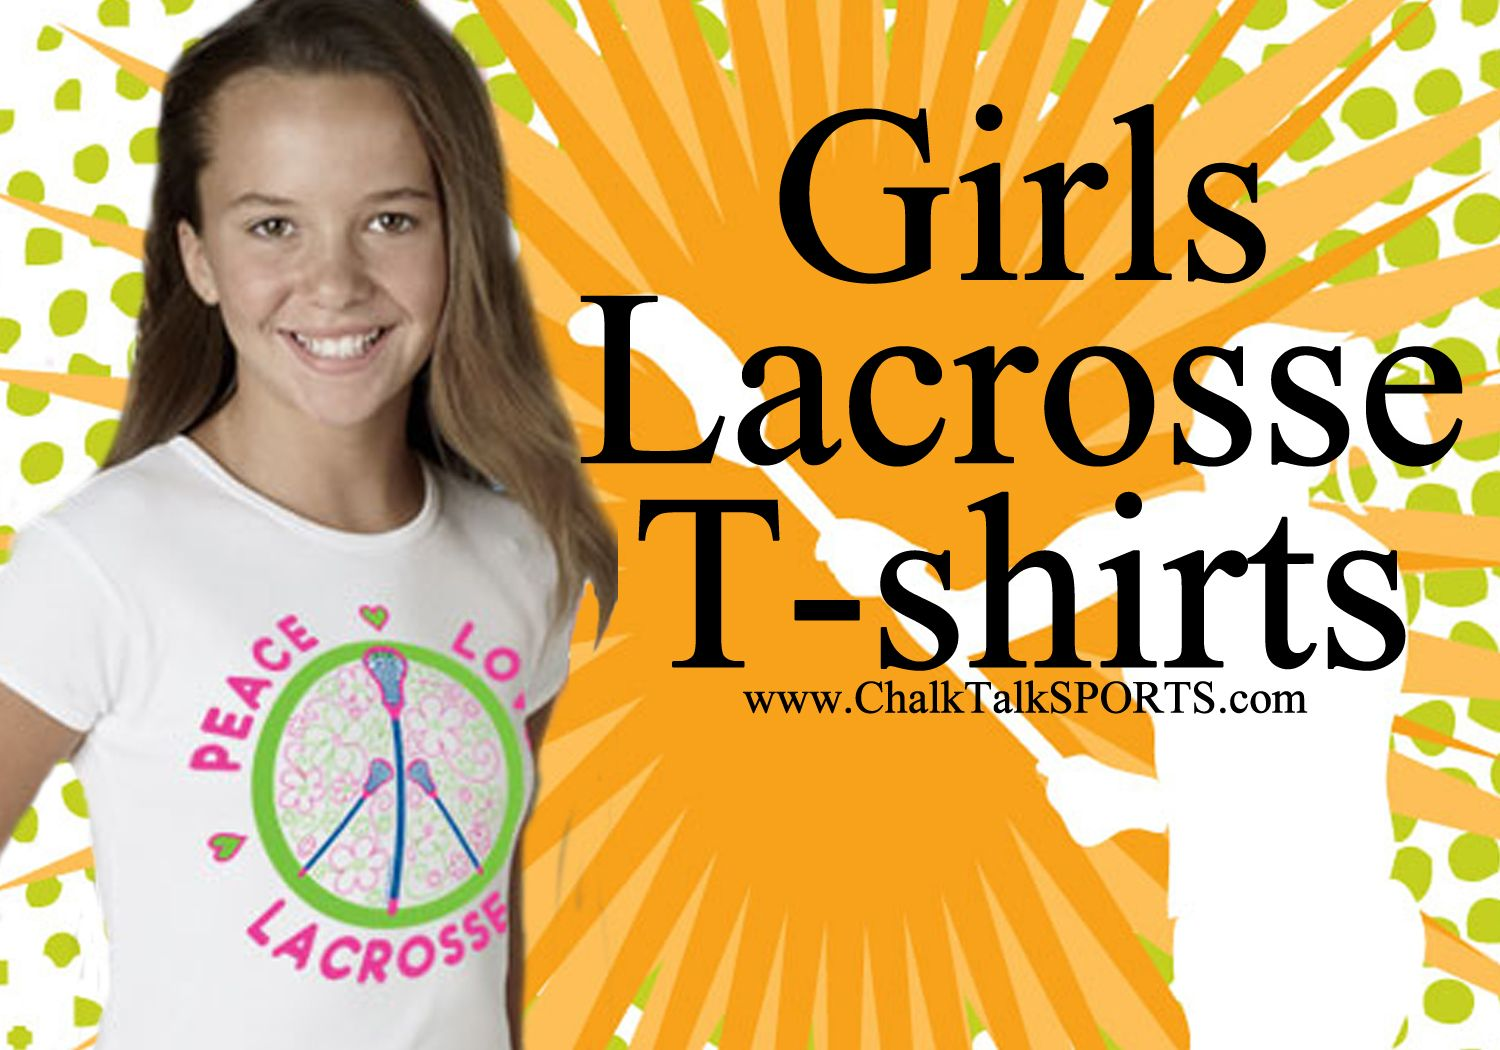 Exclusive Girls Lacrosse T-Shirt designs from ChalkTalkSPORTS.com. Liv'n Luv'n Lax'n! http://www.chalktalksports.com/Just_For_Girls_Lacrosse_Tees_s/13145.htm